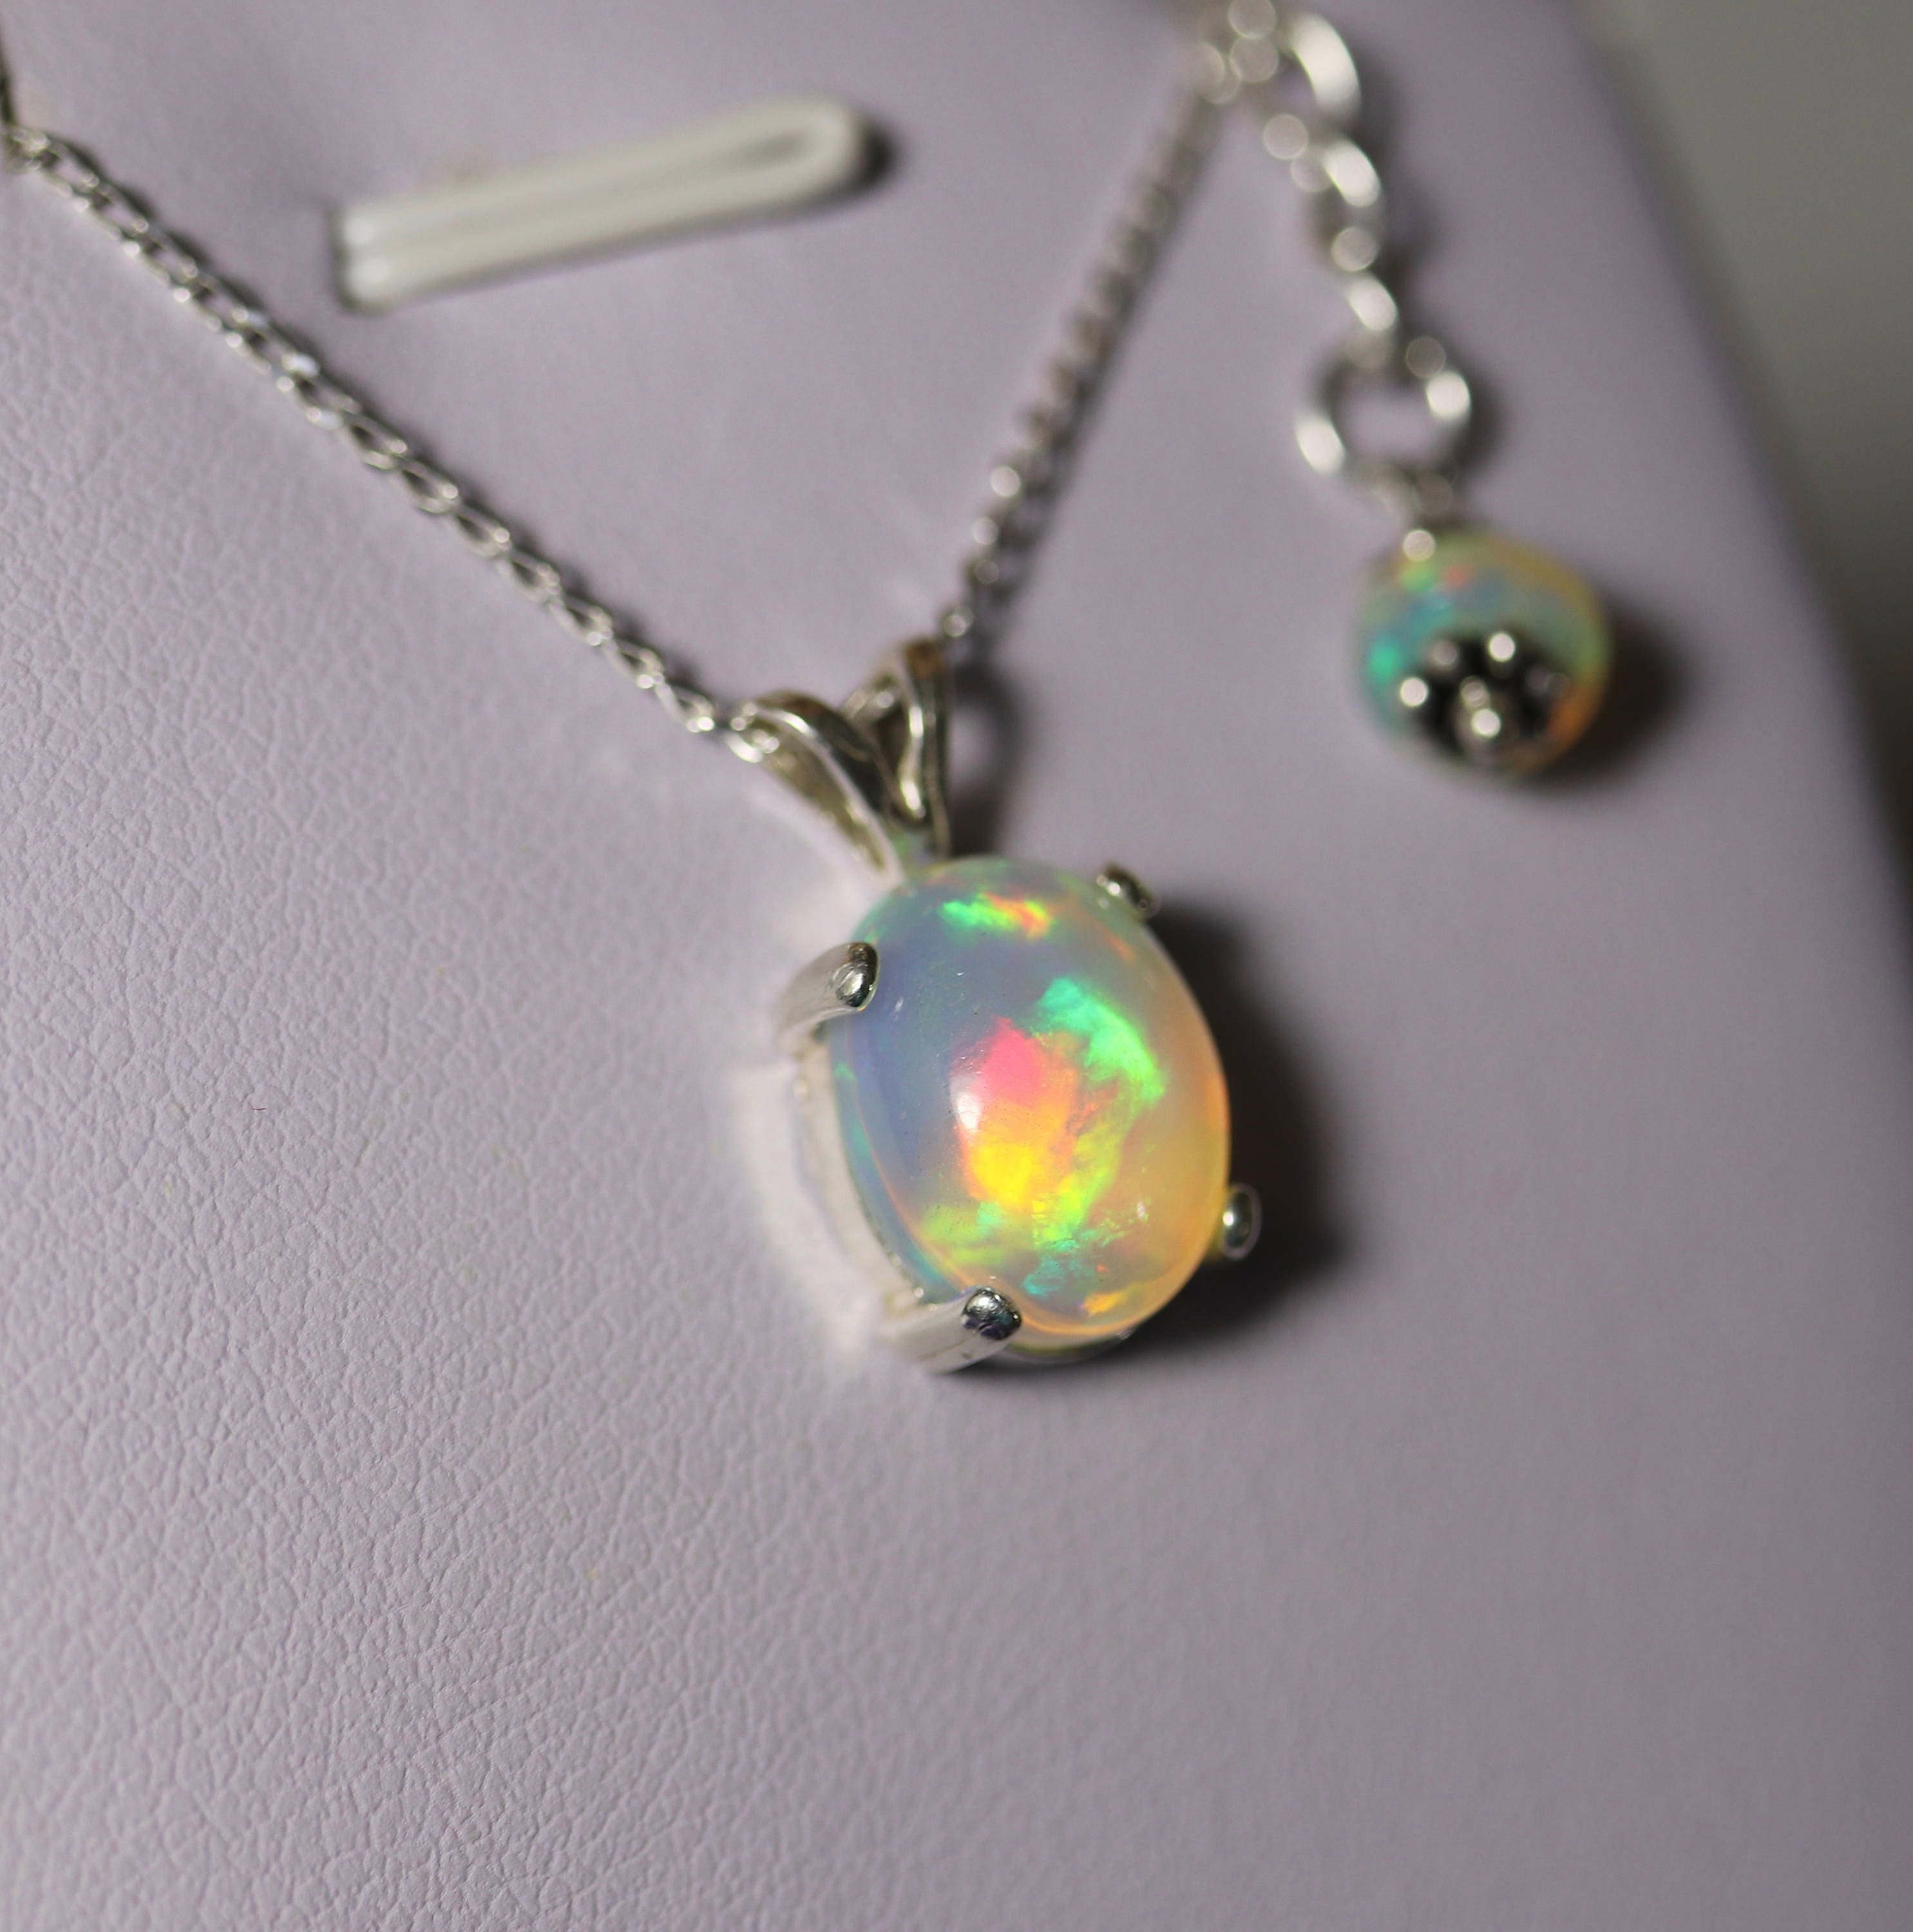 Large opal necklace gold opal necklace fire opal pendant white large opal necklace gold opal necklace fire opal pendant white opal necklace genuine fire opal fire opal pendant opal necklace mozeypictures Gallery